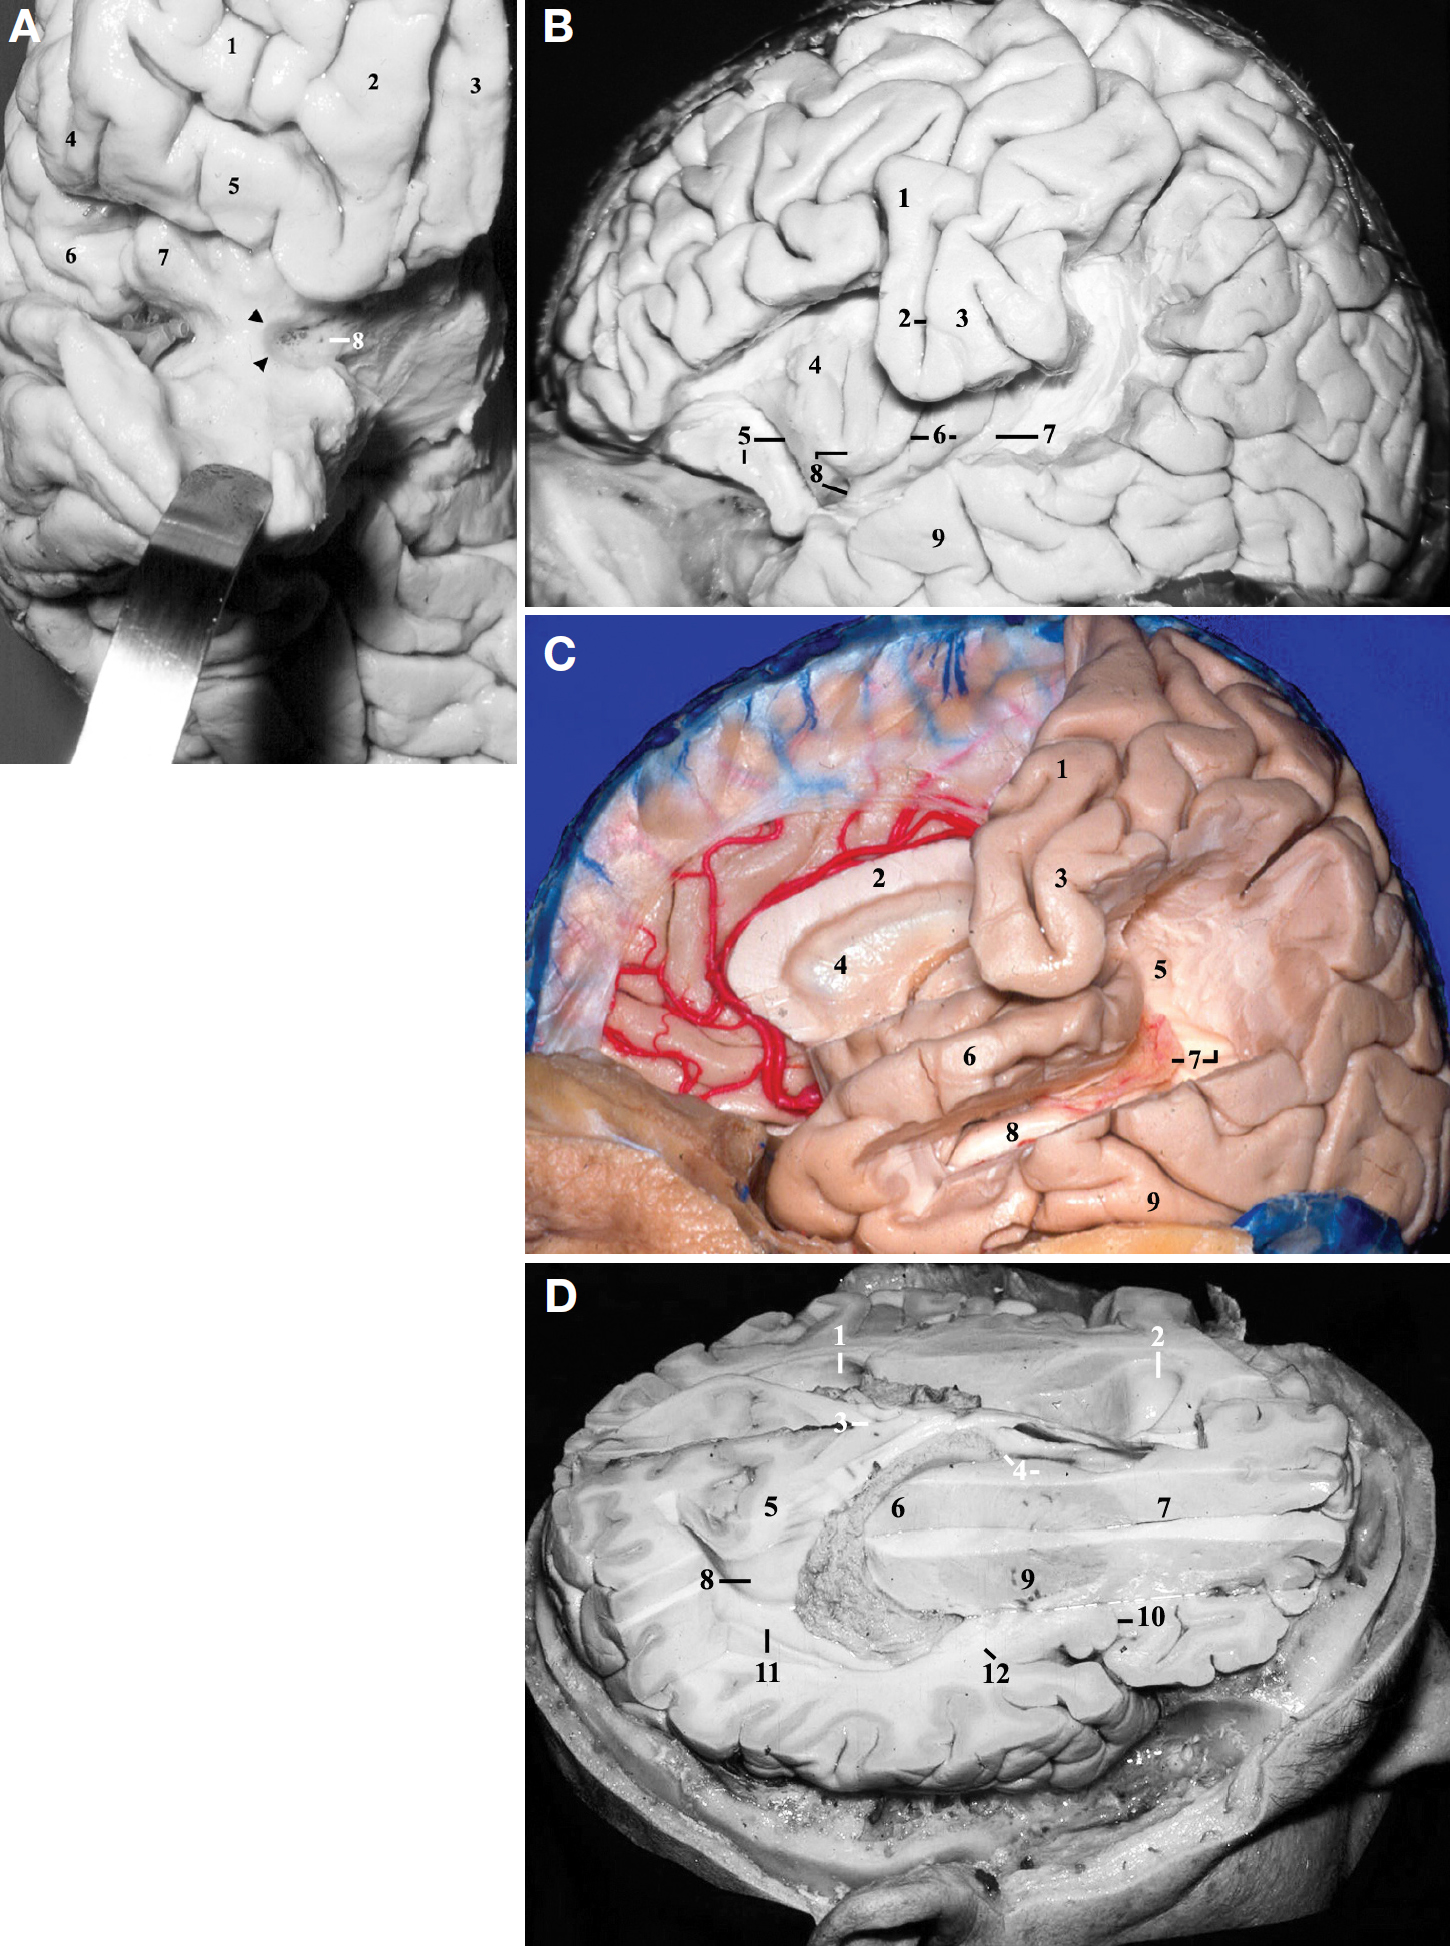 Figure 7. A, frontobasal view of the right hemisphere. The anterior part of the planum polare has been retracted inferiorly to display the anterior aspect of the insular pole. 1, anterior orbital gyrus; 2, medial orbital gyrus; 3, rectus gyrus; 4, pars triangularis; 5, posterior orbital gyrus; 6, pars opercularis; 7, anterior short gyrus of the insula; 8, anterior perforated substance. The arrowheads indicate the limen insulae. B, lateral view of the left cerebral hemisphere. The inferior frontal and supramarginal gyri have been removed to display the relationship between the insula and the opercula of the precentral and postcentral gyri. 1, precentral gyrus; 2, central sulcus; 3, postcentral gyrus; 4, anterior short gyrus of the insula; 5, posterior orbital gyrus and the anterior insular cleft; 6, central sulcus and the anterior long gyrus of the insula; 7, posterior long gyrus of the insula and the inferior limiting sulcus of the insula; 8, insular apex and insular pole; 9, middle temporal gyrus. C, lateral view of the left cerebral hemisphere. The posterior portion of the superior temporal gyrus, the upper portion of the middle temporal gyrus, and the supramarginal gyrus have been removed. 1, precentral gyrus; 2, corpus callosum; 3, postcentral gyrus; 4, septum pellucidum at the level of the frontal horn; 5, upper portion of the atrium; 6, superior temporal gyrus; 7, calcar avis and the glomus of the atrium (choroid plexus); 8, hippocampus; 9, inferior temporal gyrus. D, superolateral view of the right cerebral hemisphere. 1, left atrium; 2, left frontal horn; 3, splenium of the corpus callosum; 4, foramen of Monro and caudate nucleus; 5, bulb of the callosum; 6, thalamus; 7, anterior extremity of the anterior limb of internal capsule; 8, calcar avis; 9, lentiform nucleus; 10, anterior insular cleft; 11, collateral trigone; 12, sublenticular portion of the internal capsule. (Images courtesy of AL Rhoton, Jr.)